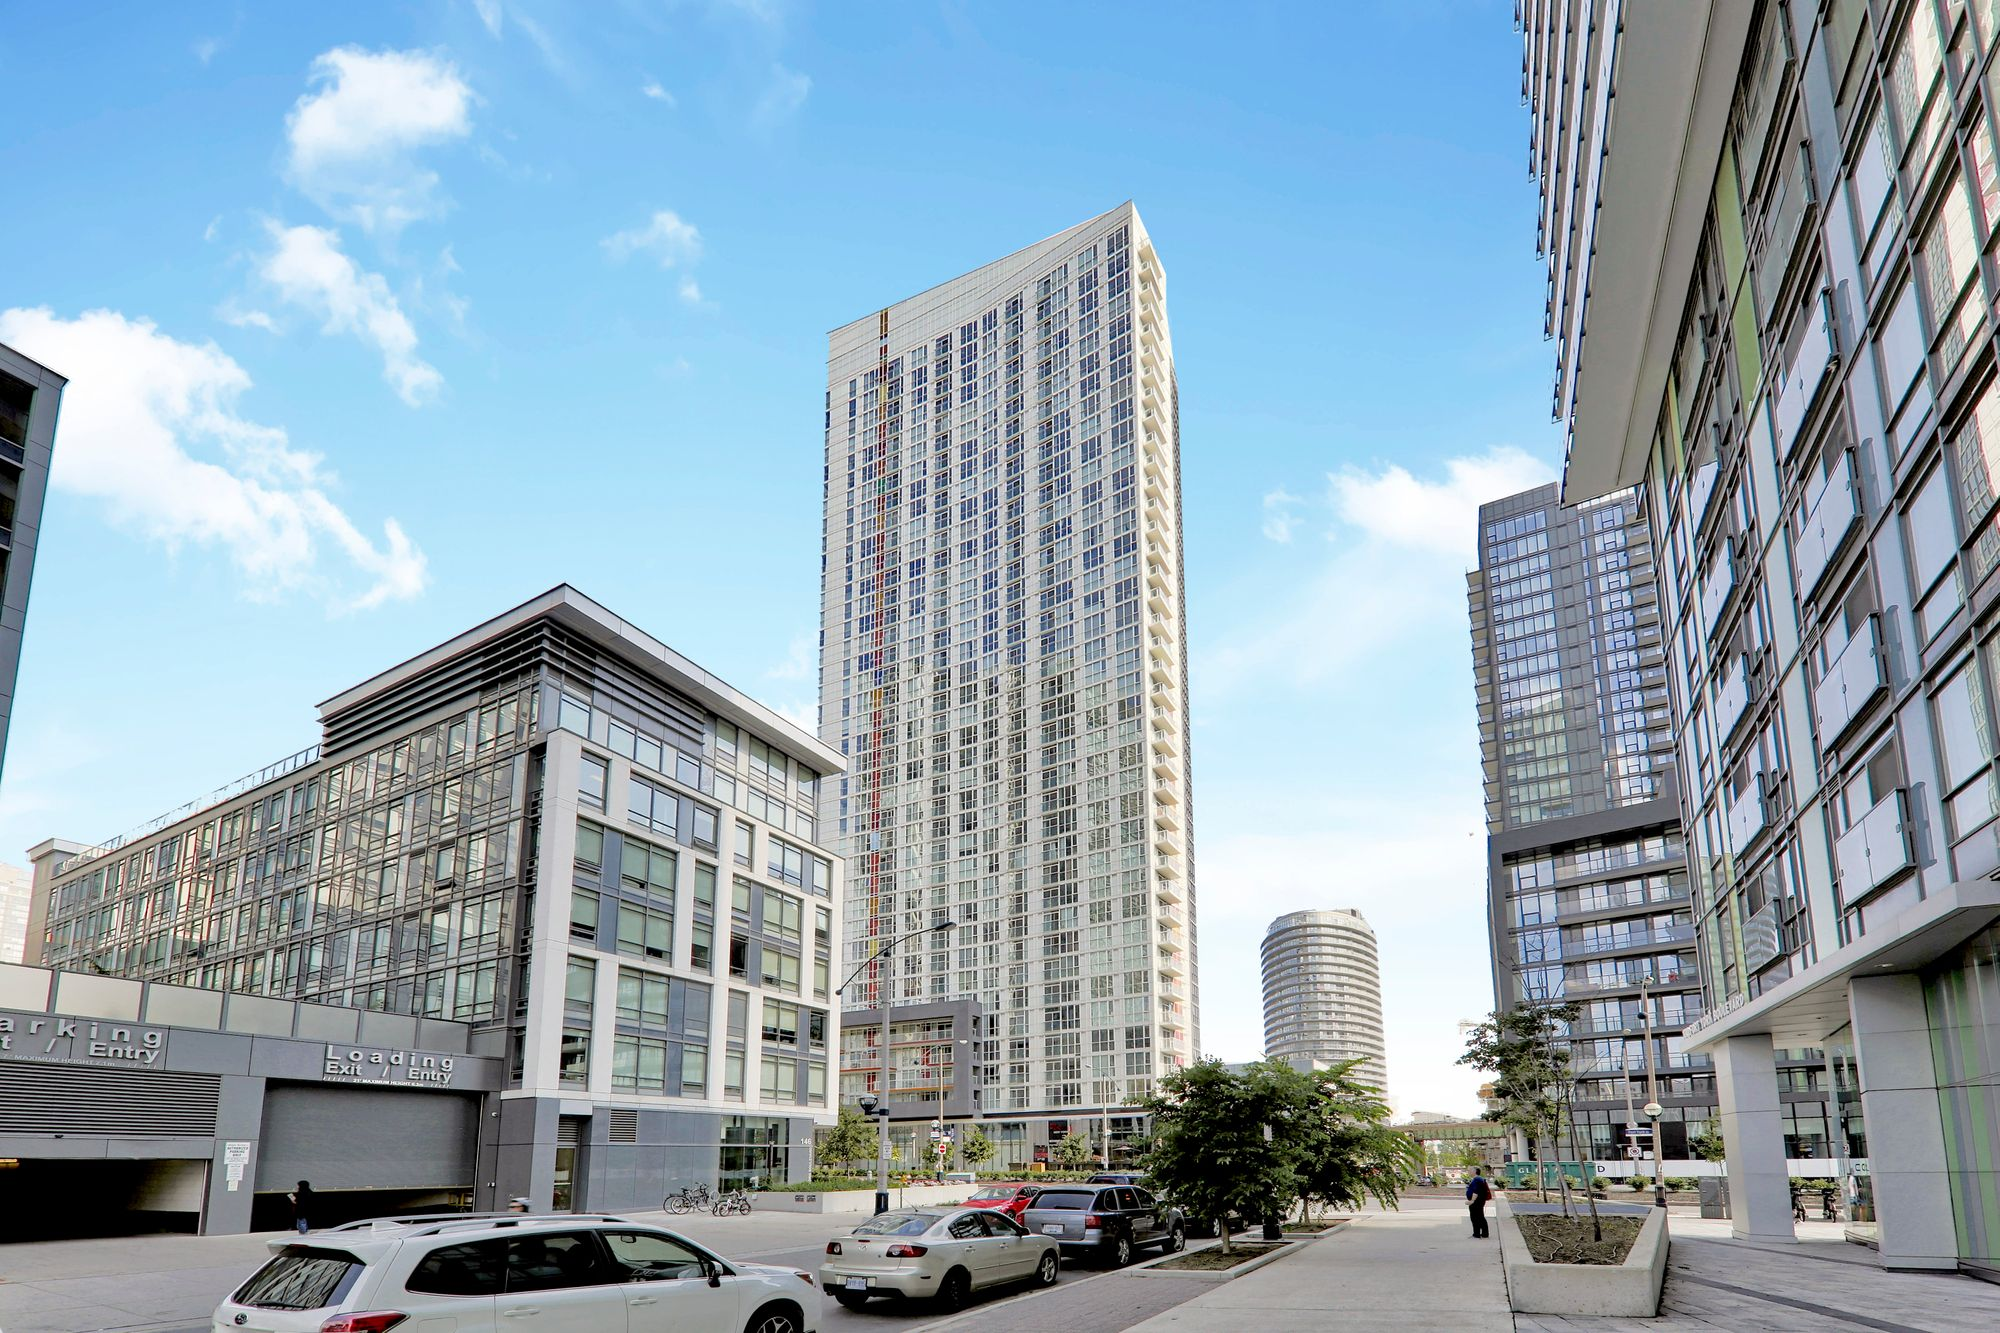 85 Queens Wharf Rd, unit 719 for rent in CityPlace - image #1